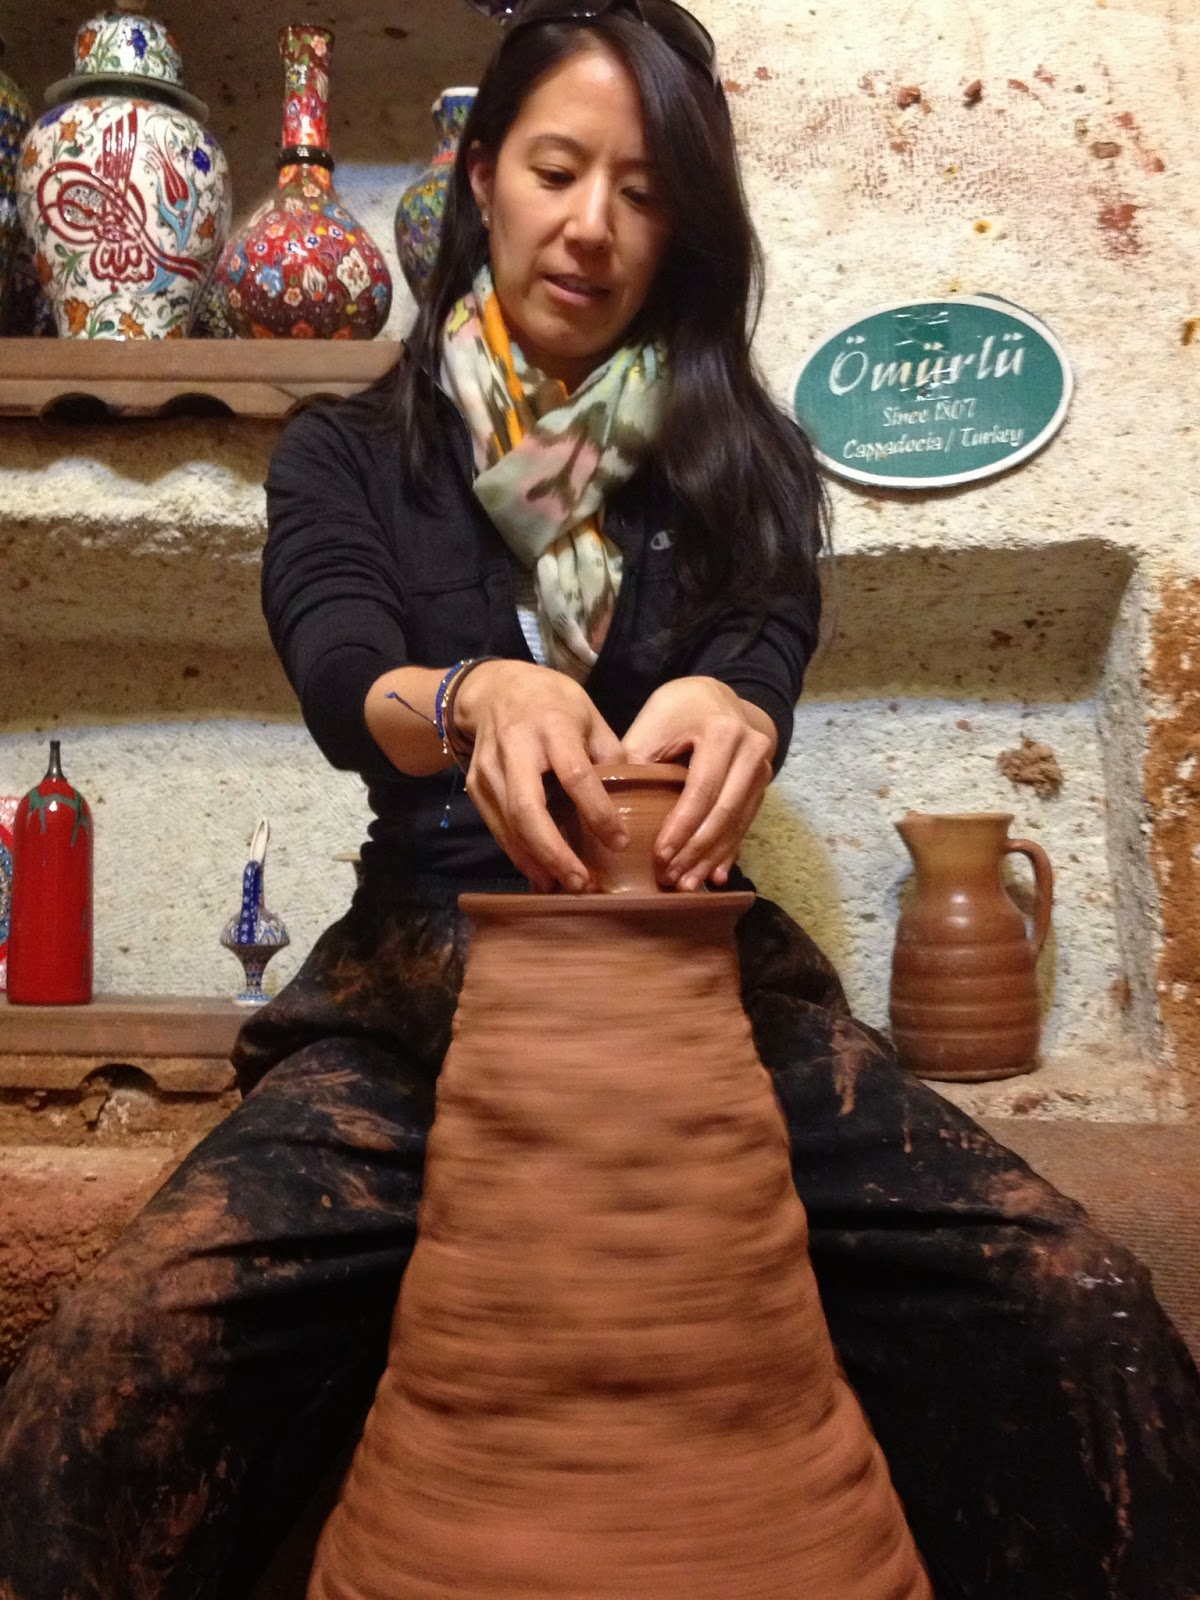 Cappadocia - We visited a pottery factory and got to try making some pottery